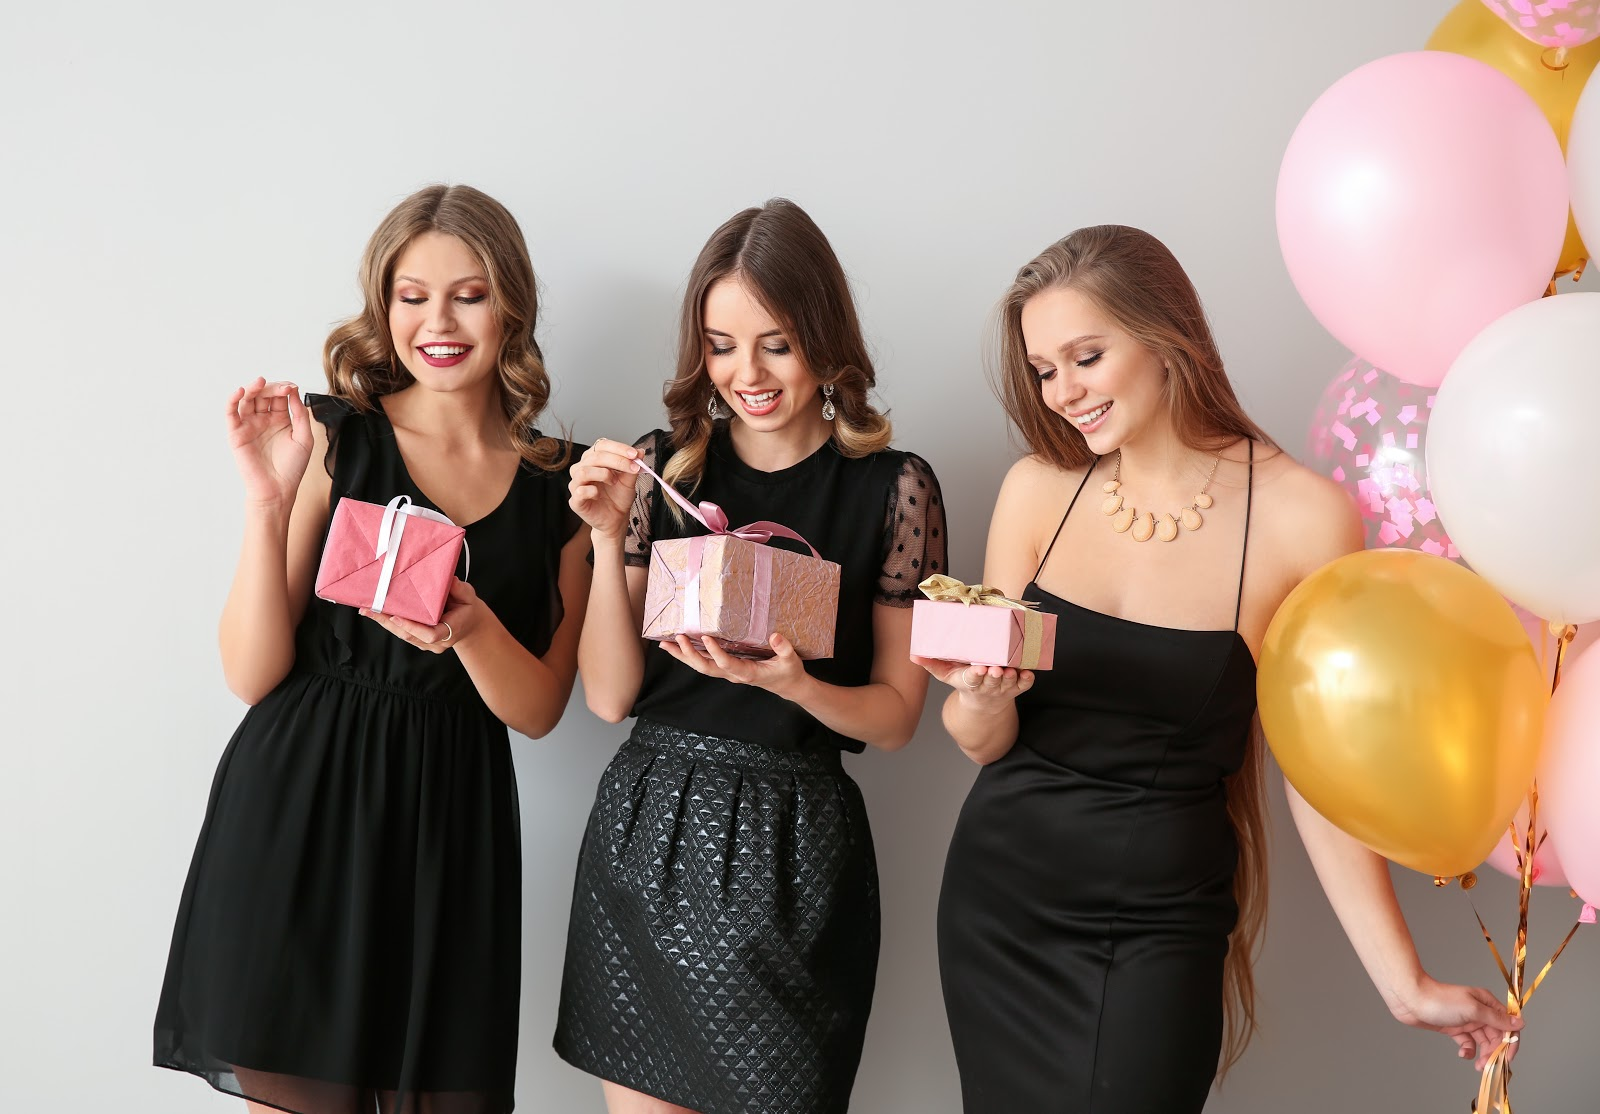 bridesmaid proposal ideas: Three women holding gifts and balloons